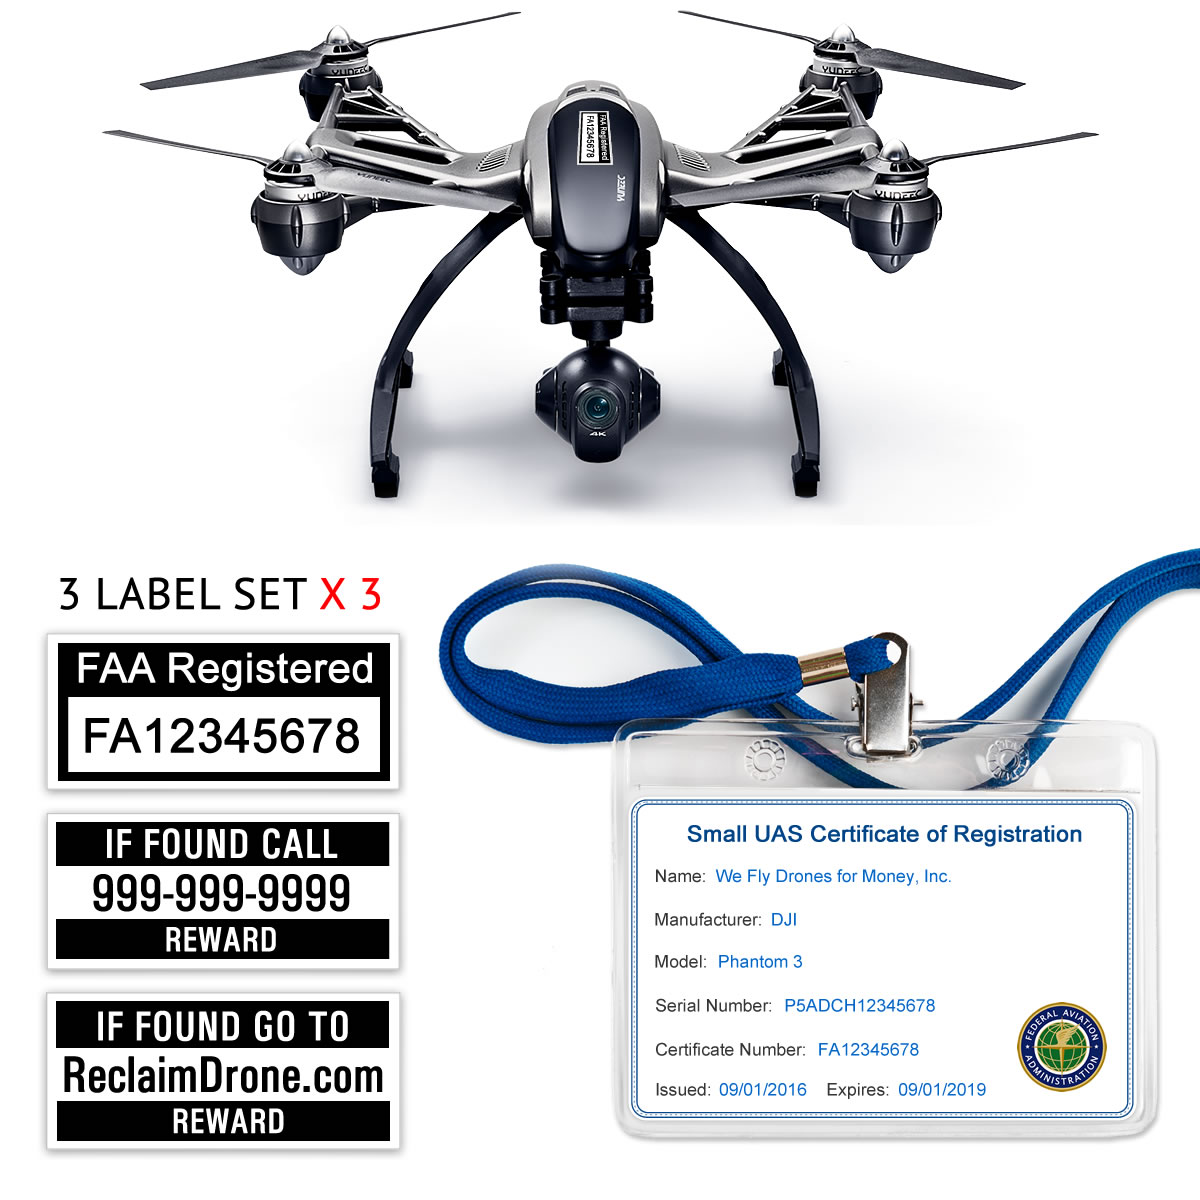 Yuneec Typhoon Q500 | 4K FAA Certificate Registration ID card and label bundle for commercial drone pilots